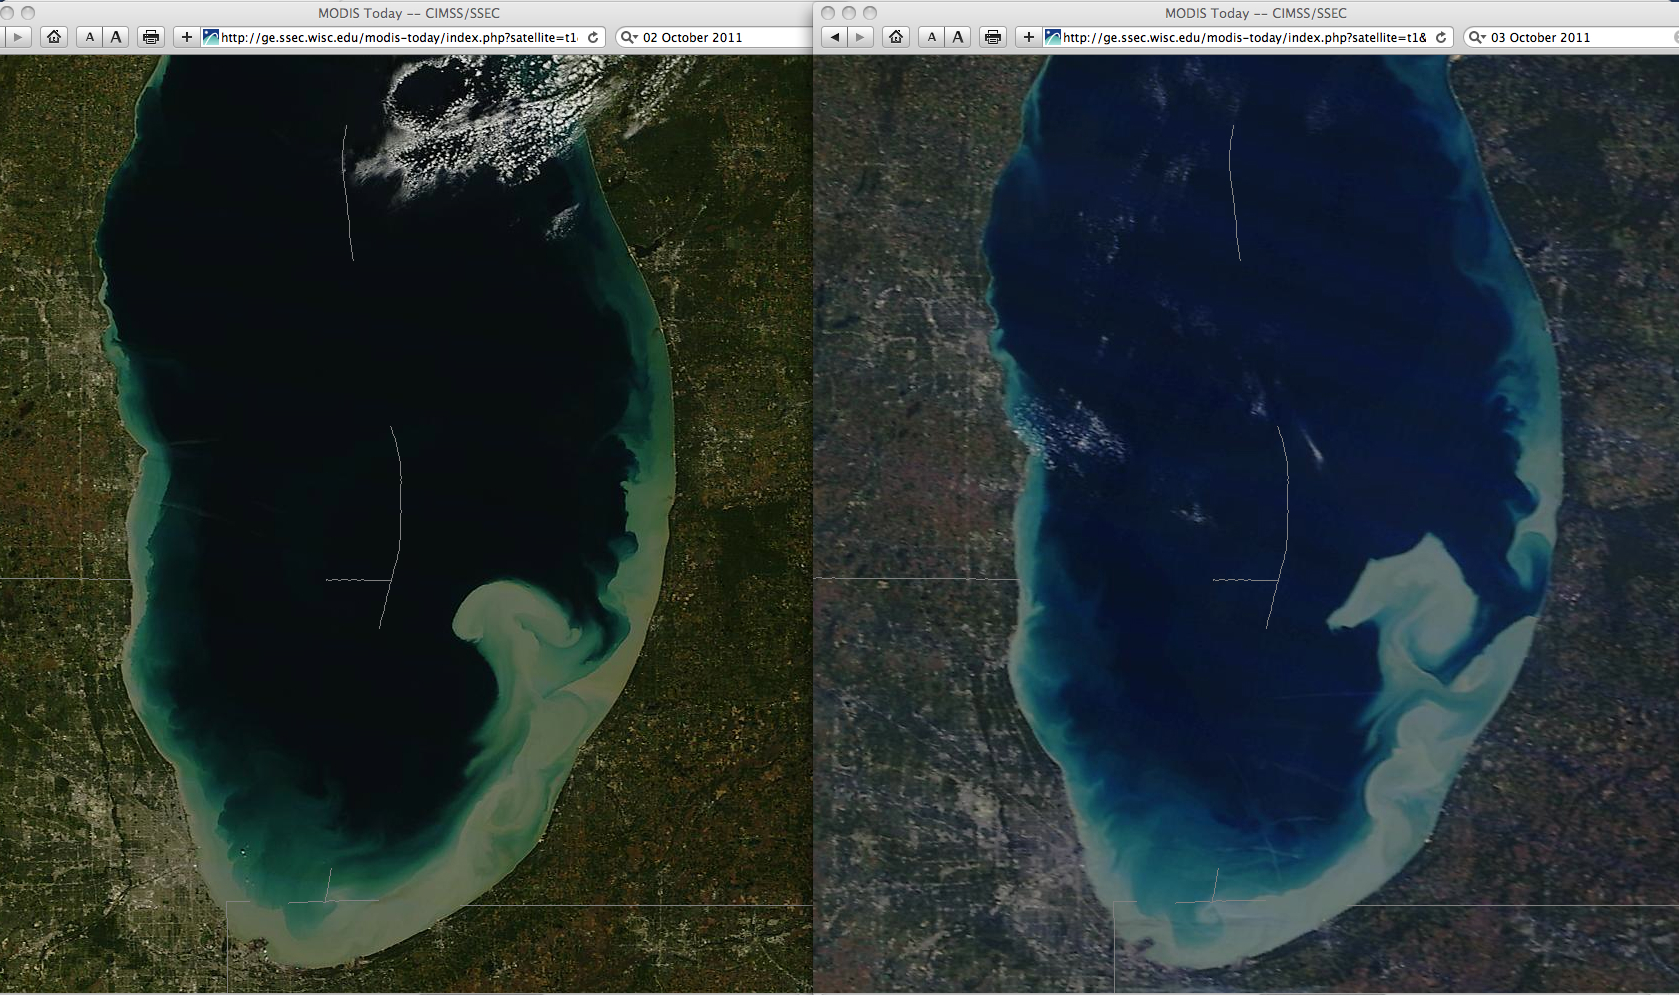 MODIS true color images: 02 October (left) and 03 October (right)